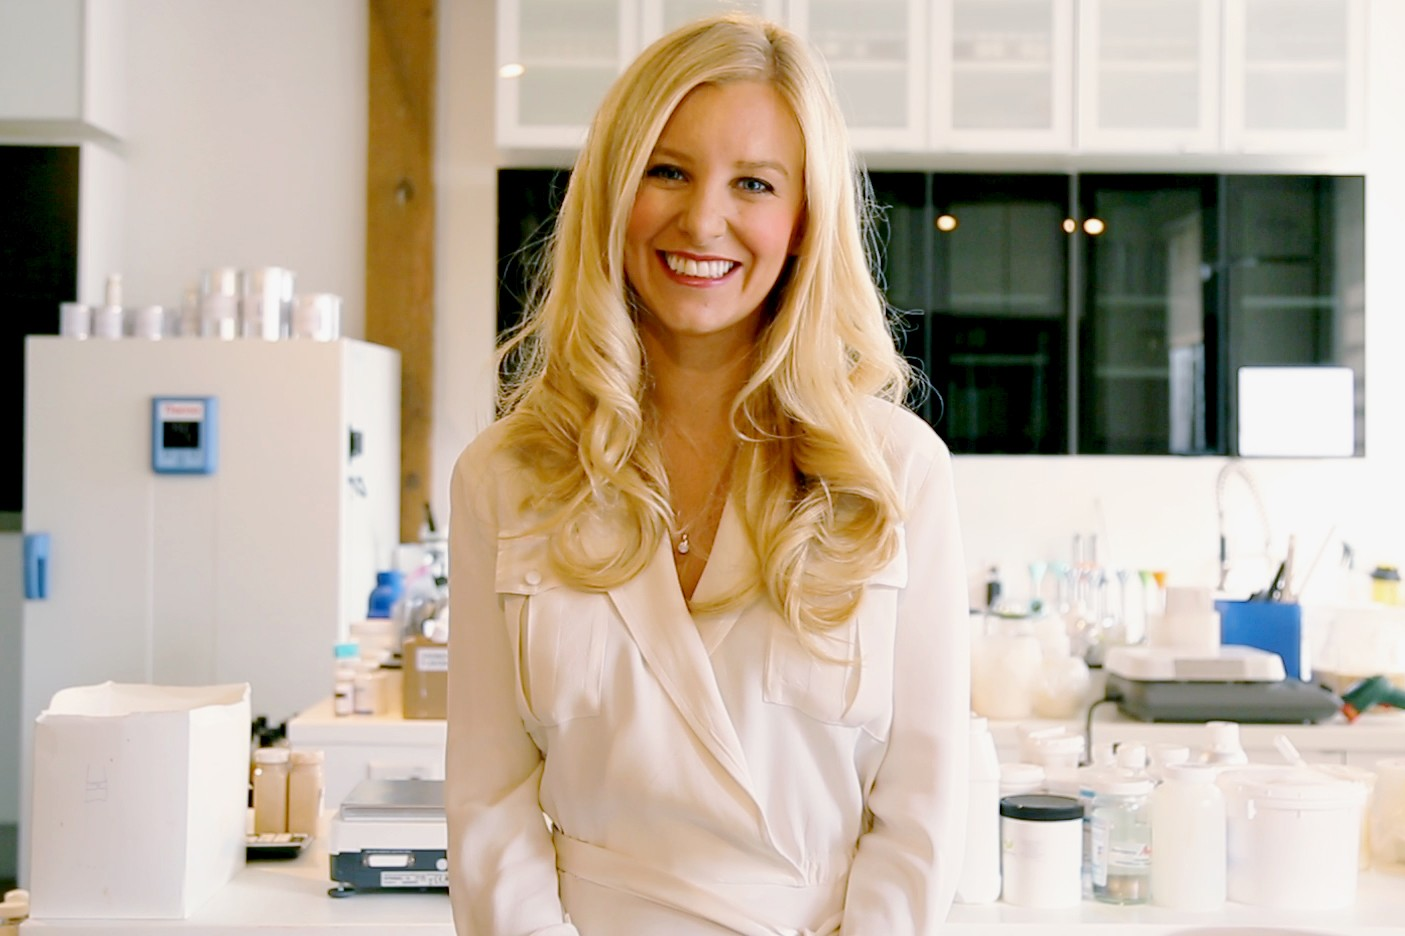 the ordinary deciem niod skincare tips ceo nicola kilner interview hyaluronic acid serums